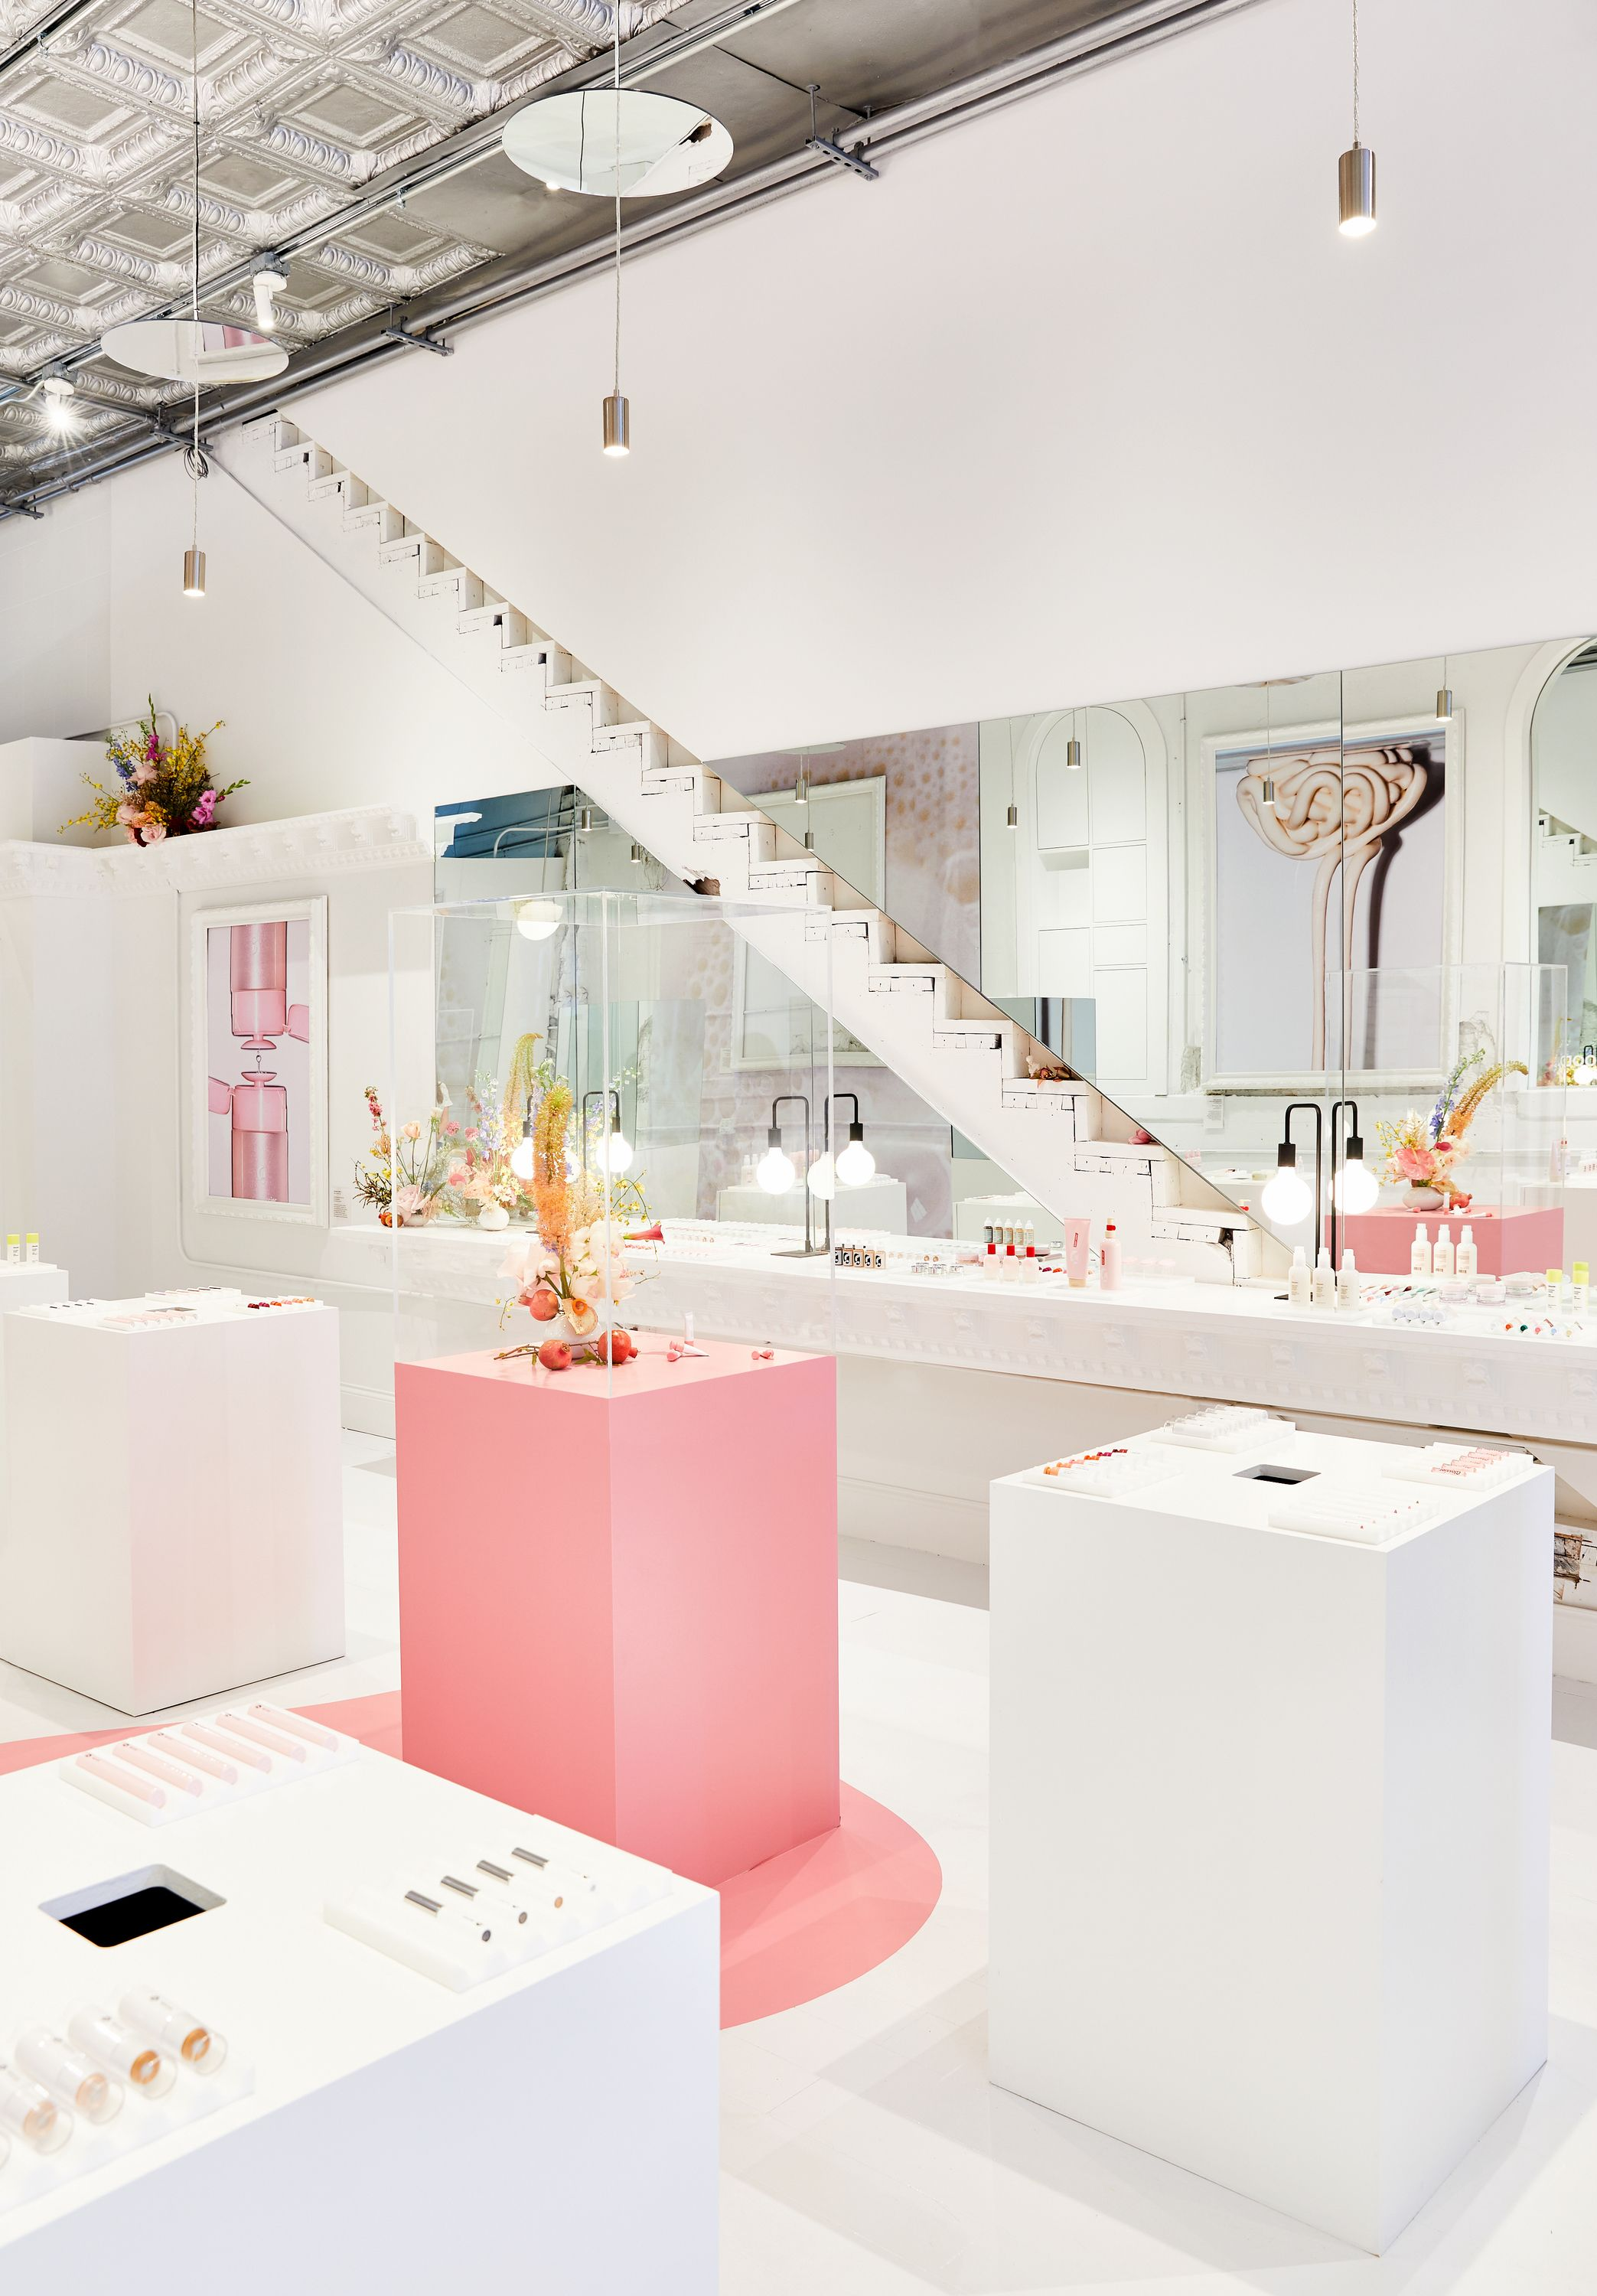 Glossier to debut a popup retail experience in the West